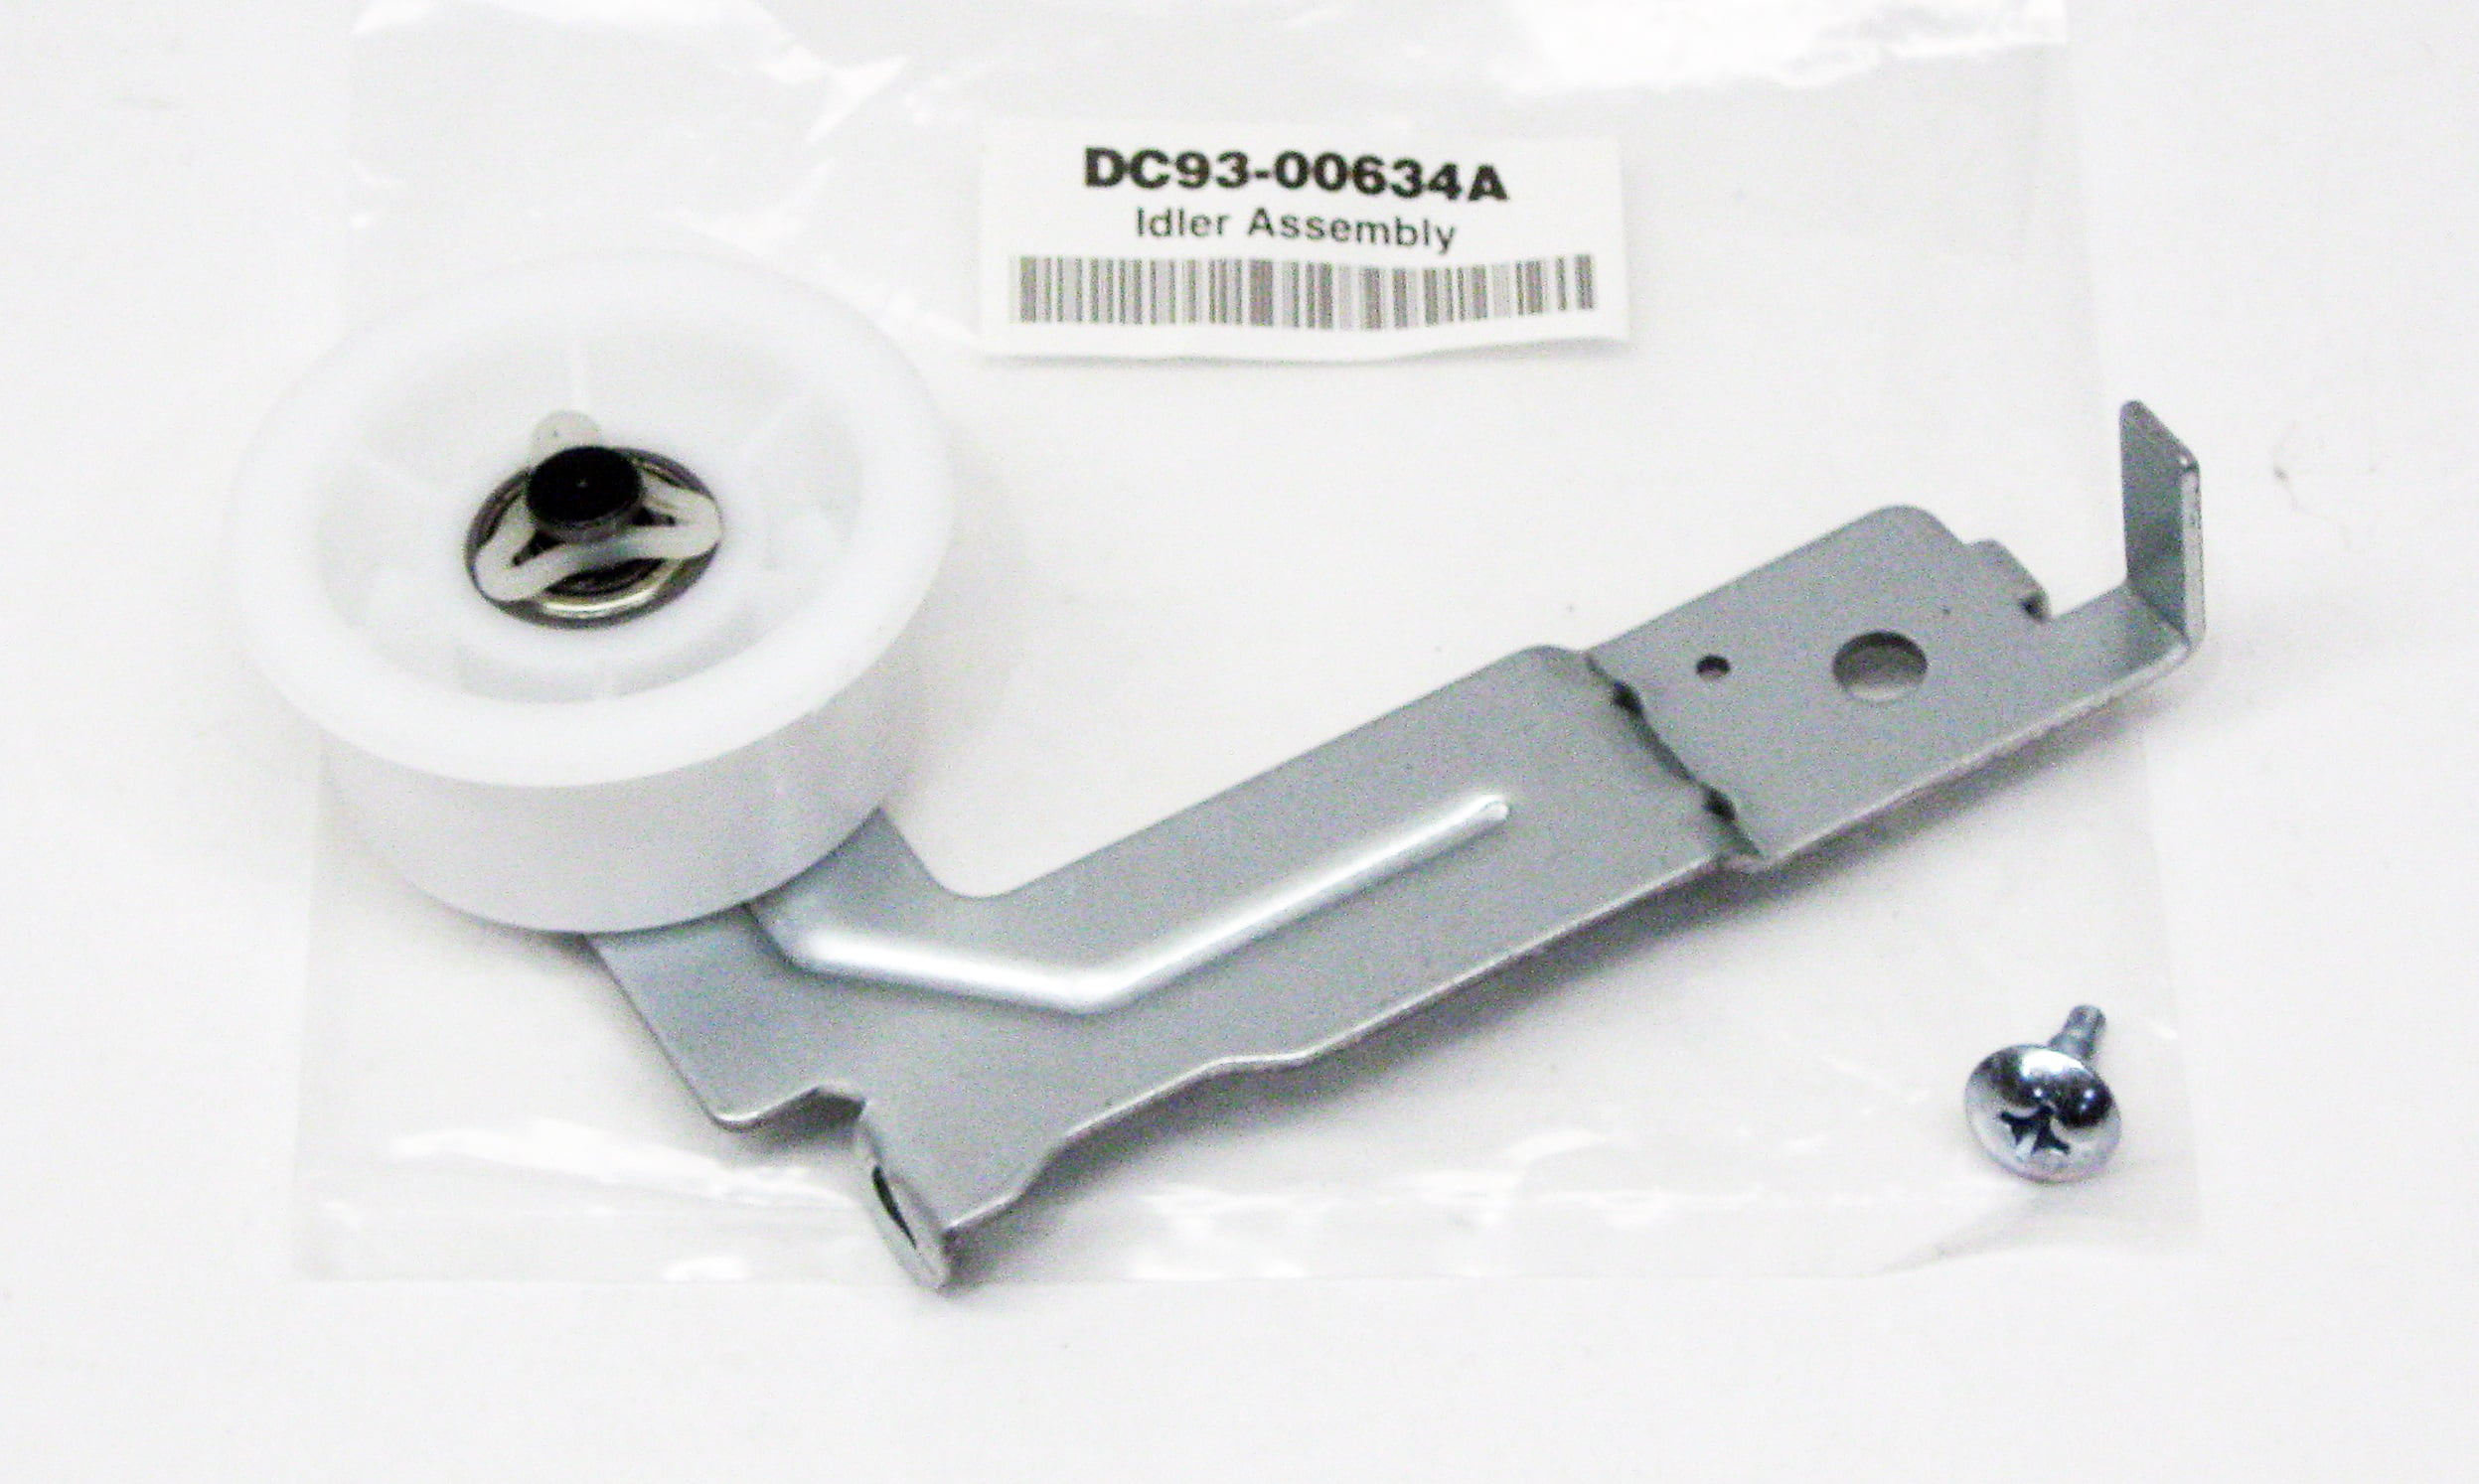 Dryer Idler Pulley Assembly for Samsung DC93-00634A AP6038887 PS11771601 by Erp